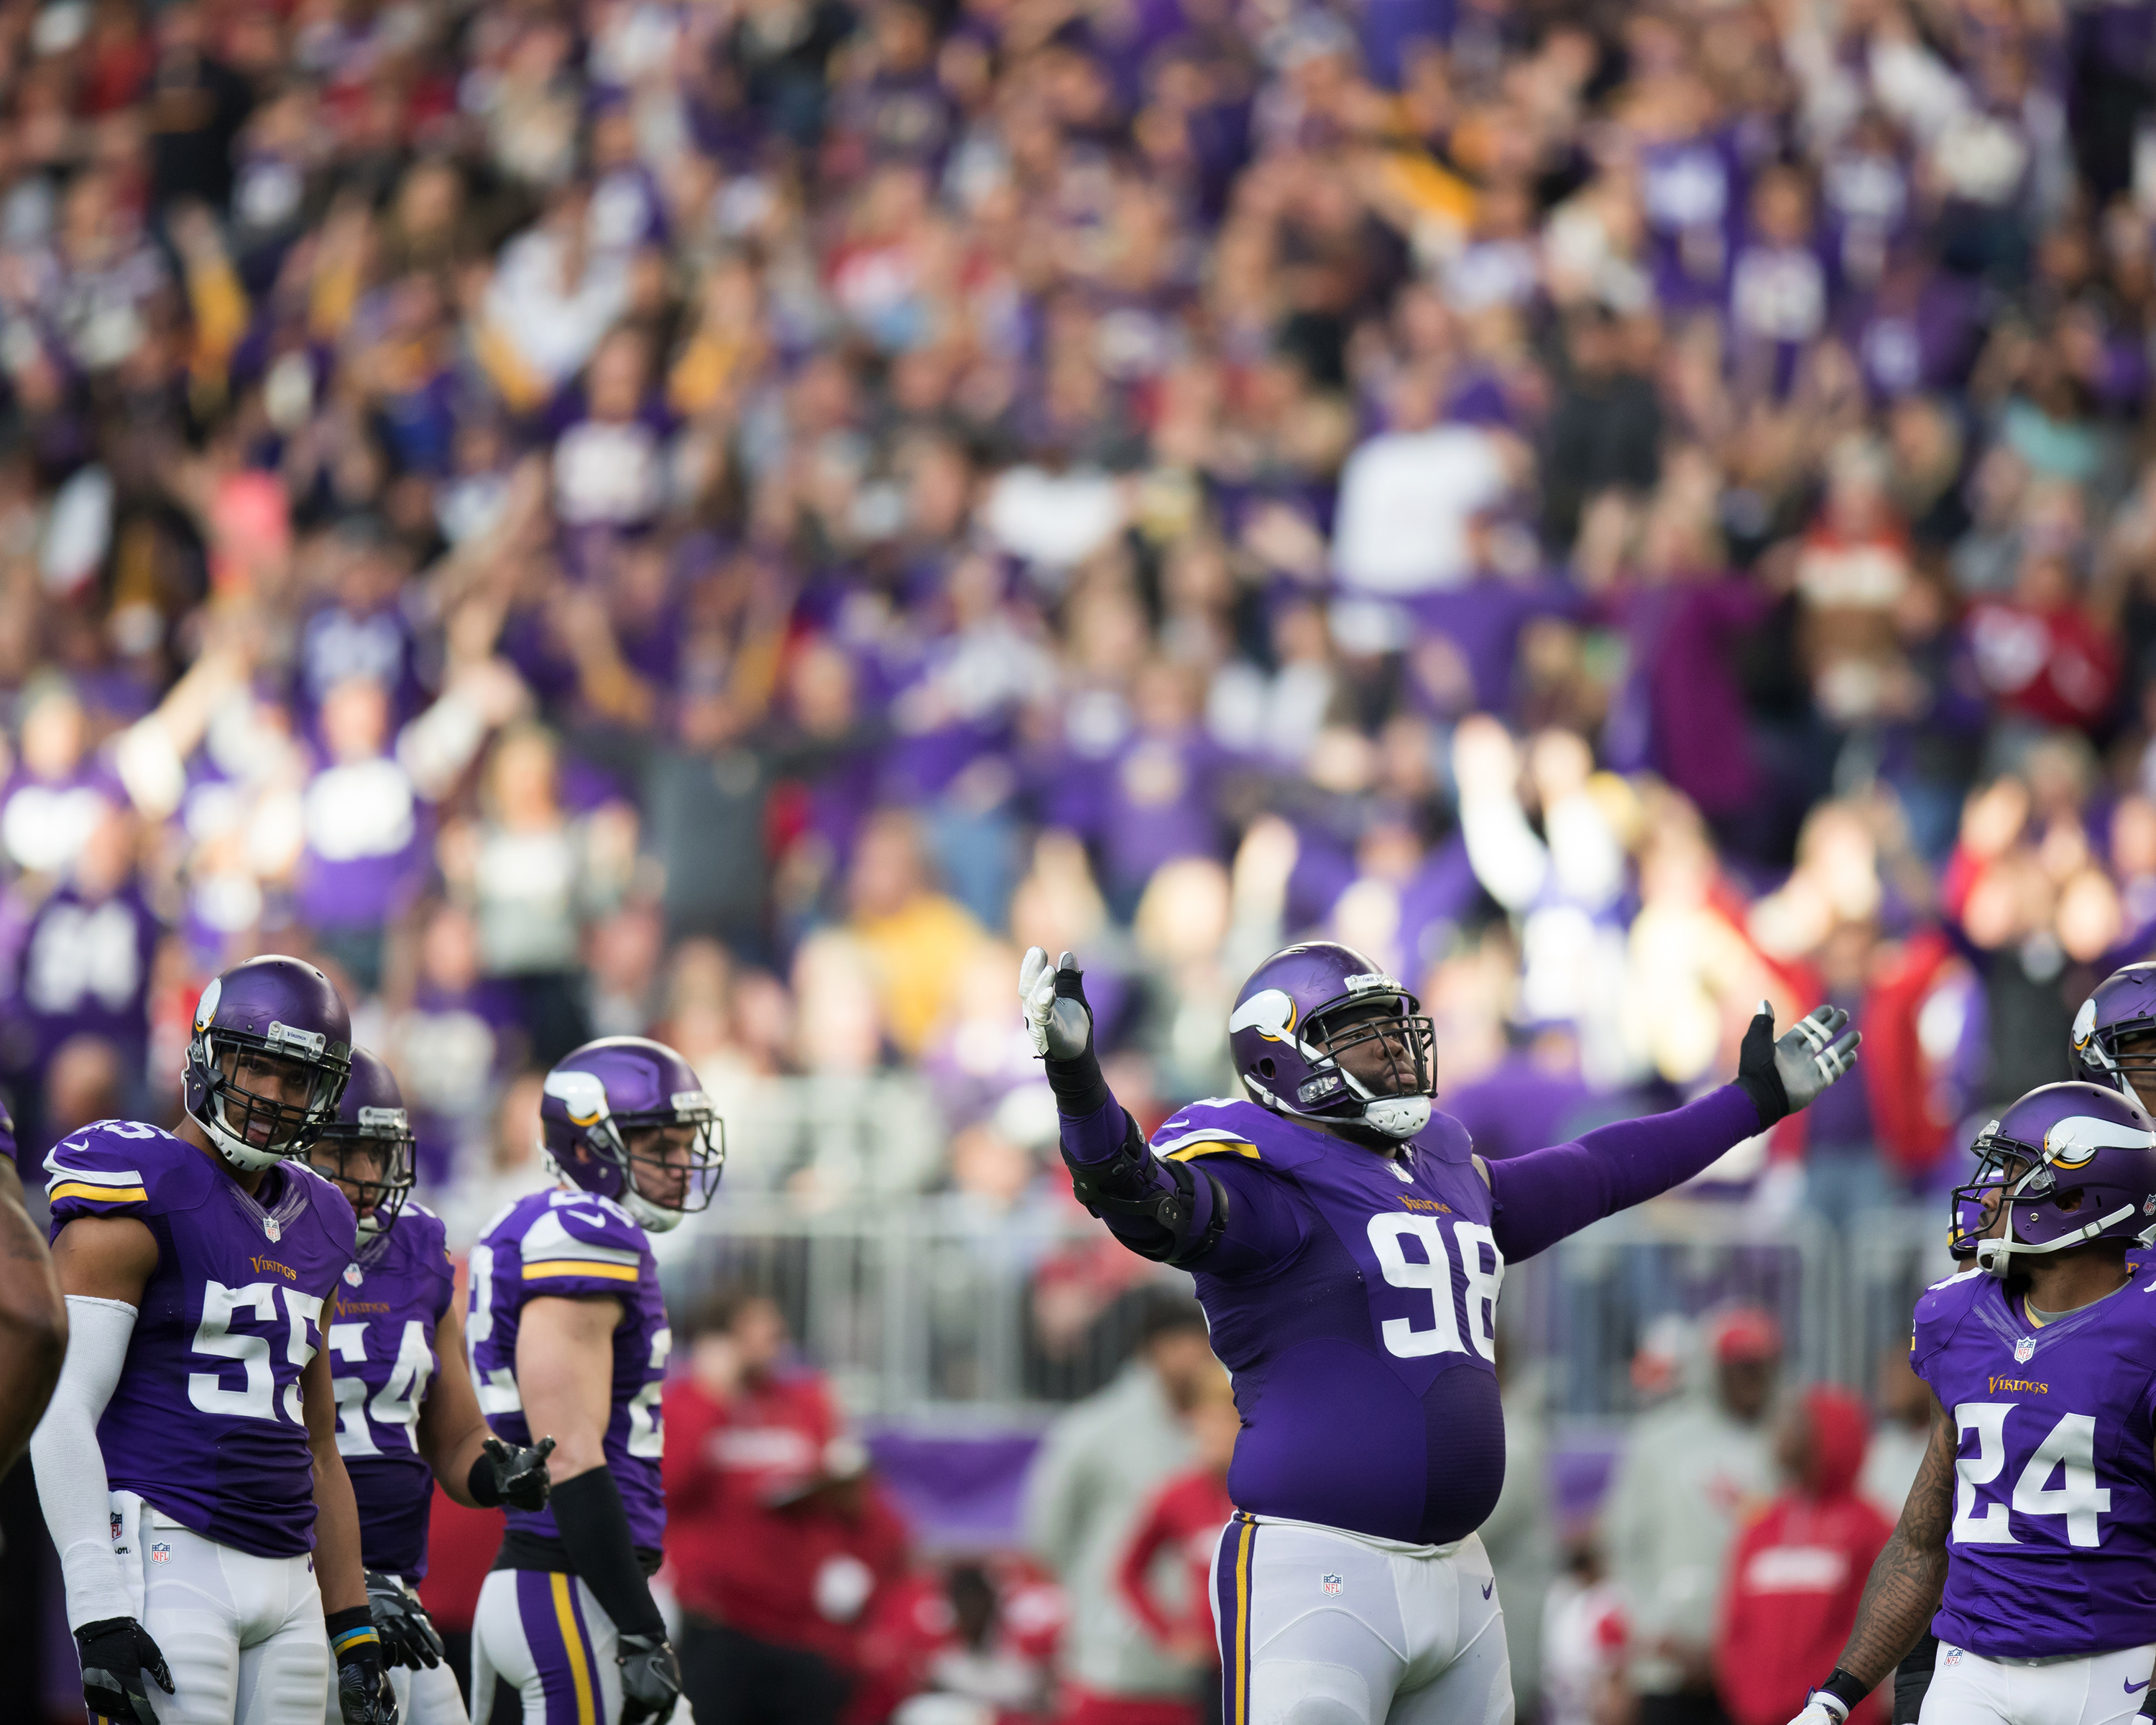 Thumbnail for Skol Chant